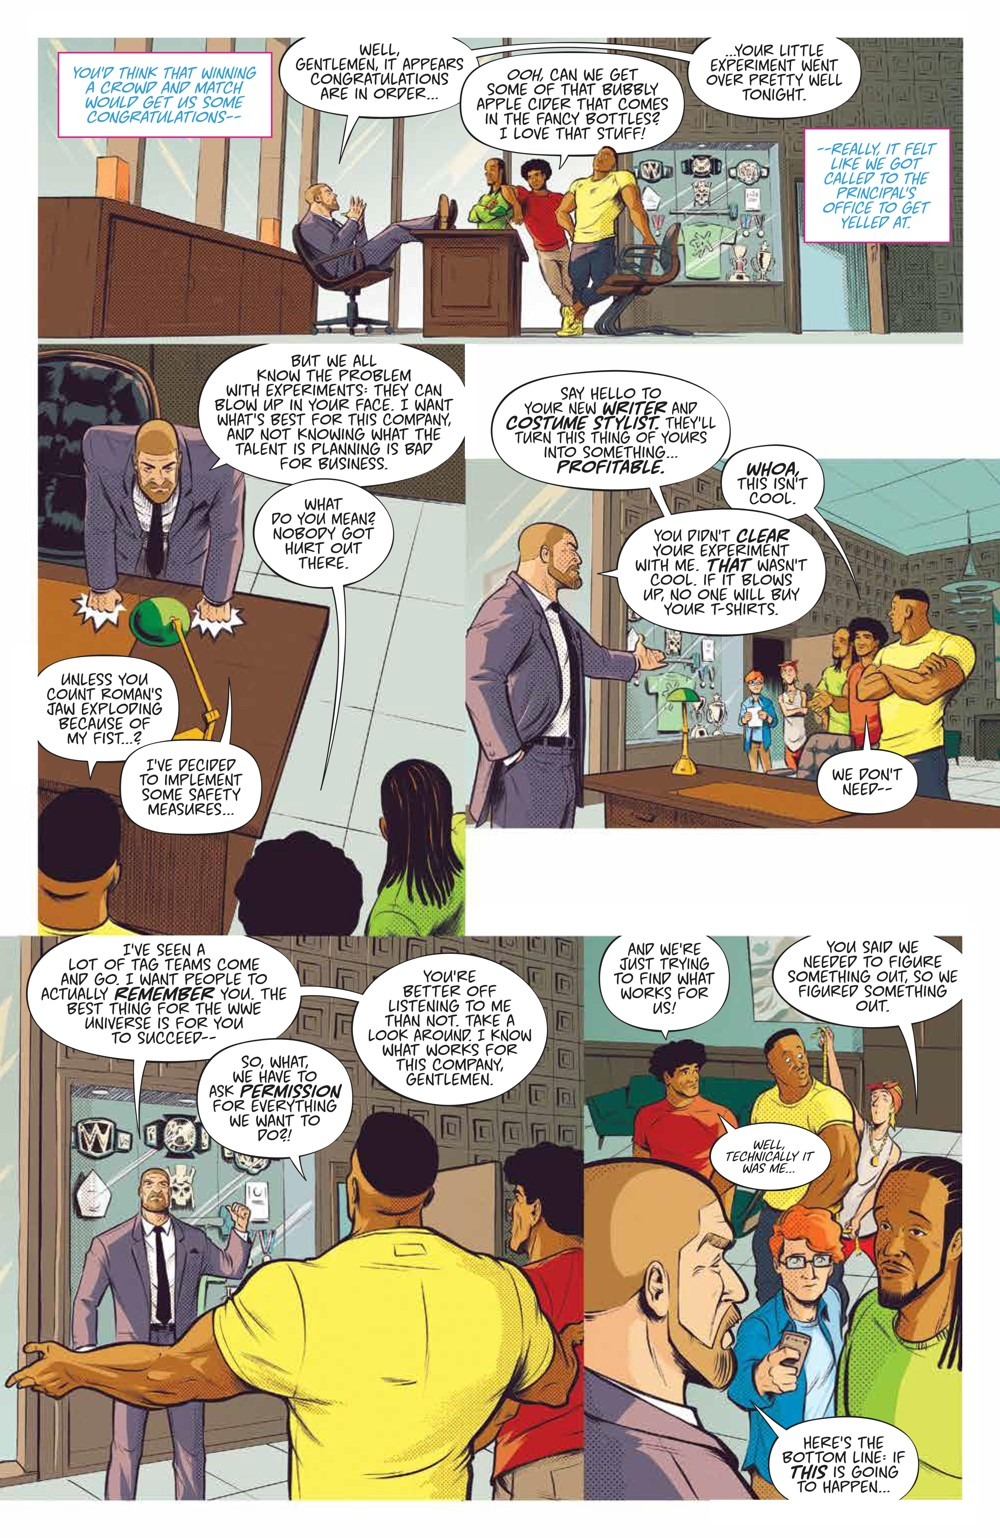 WWE_NewDay_002_PRESS_3 ComicList Previews: WWE THE NEW DAY POWER OF POSITIVITY #2 (OF 2)